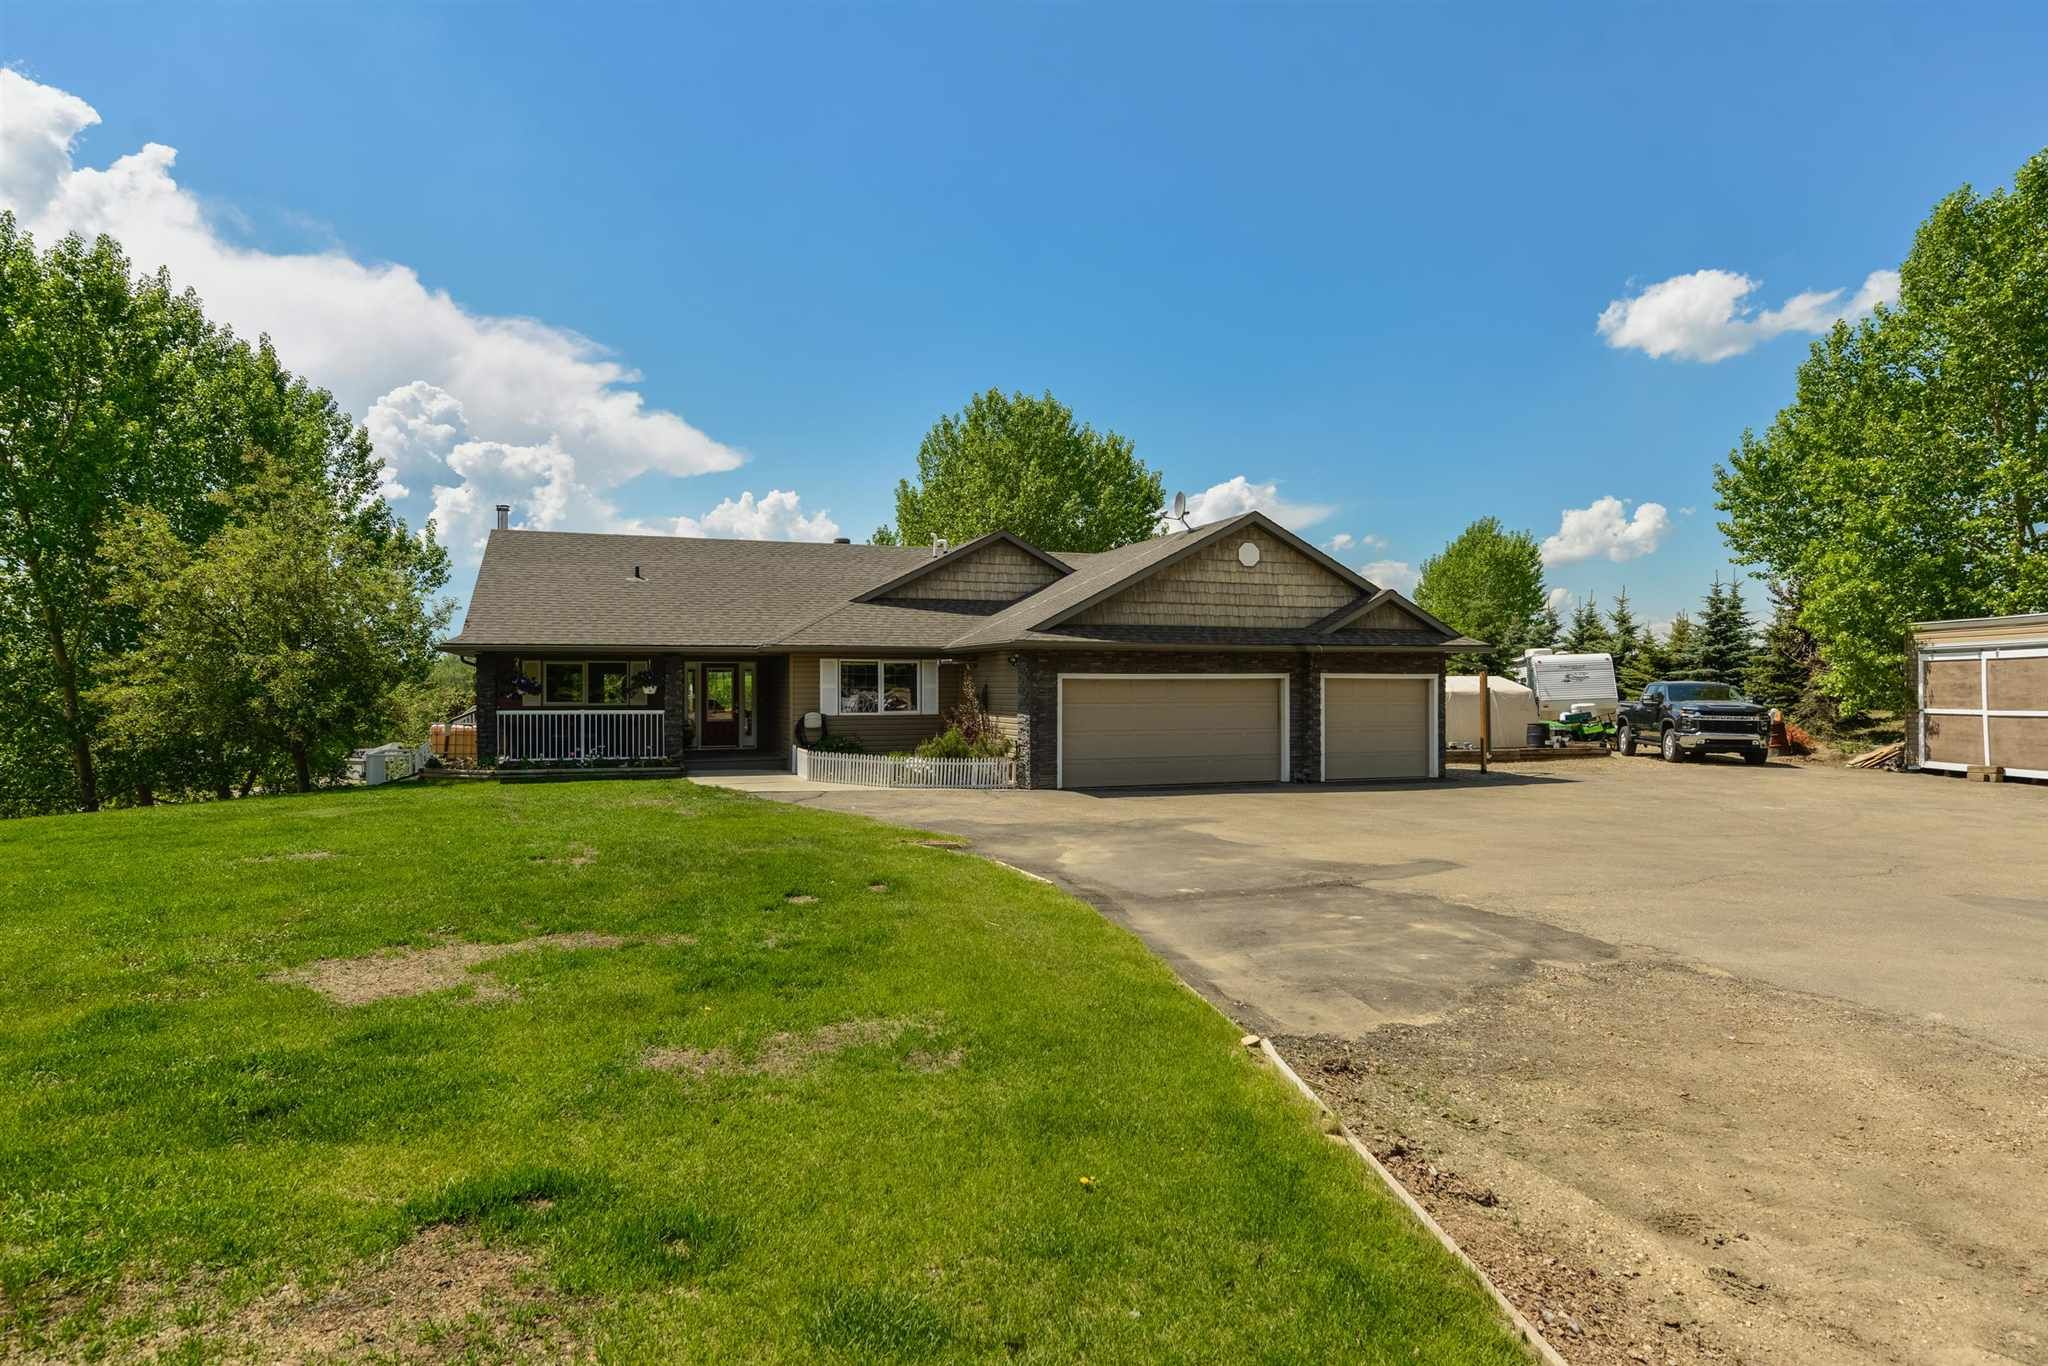 Main Photo: 47 53122 RGE RD 14: Rural Parkland County House for sale : MLS®# E4248910